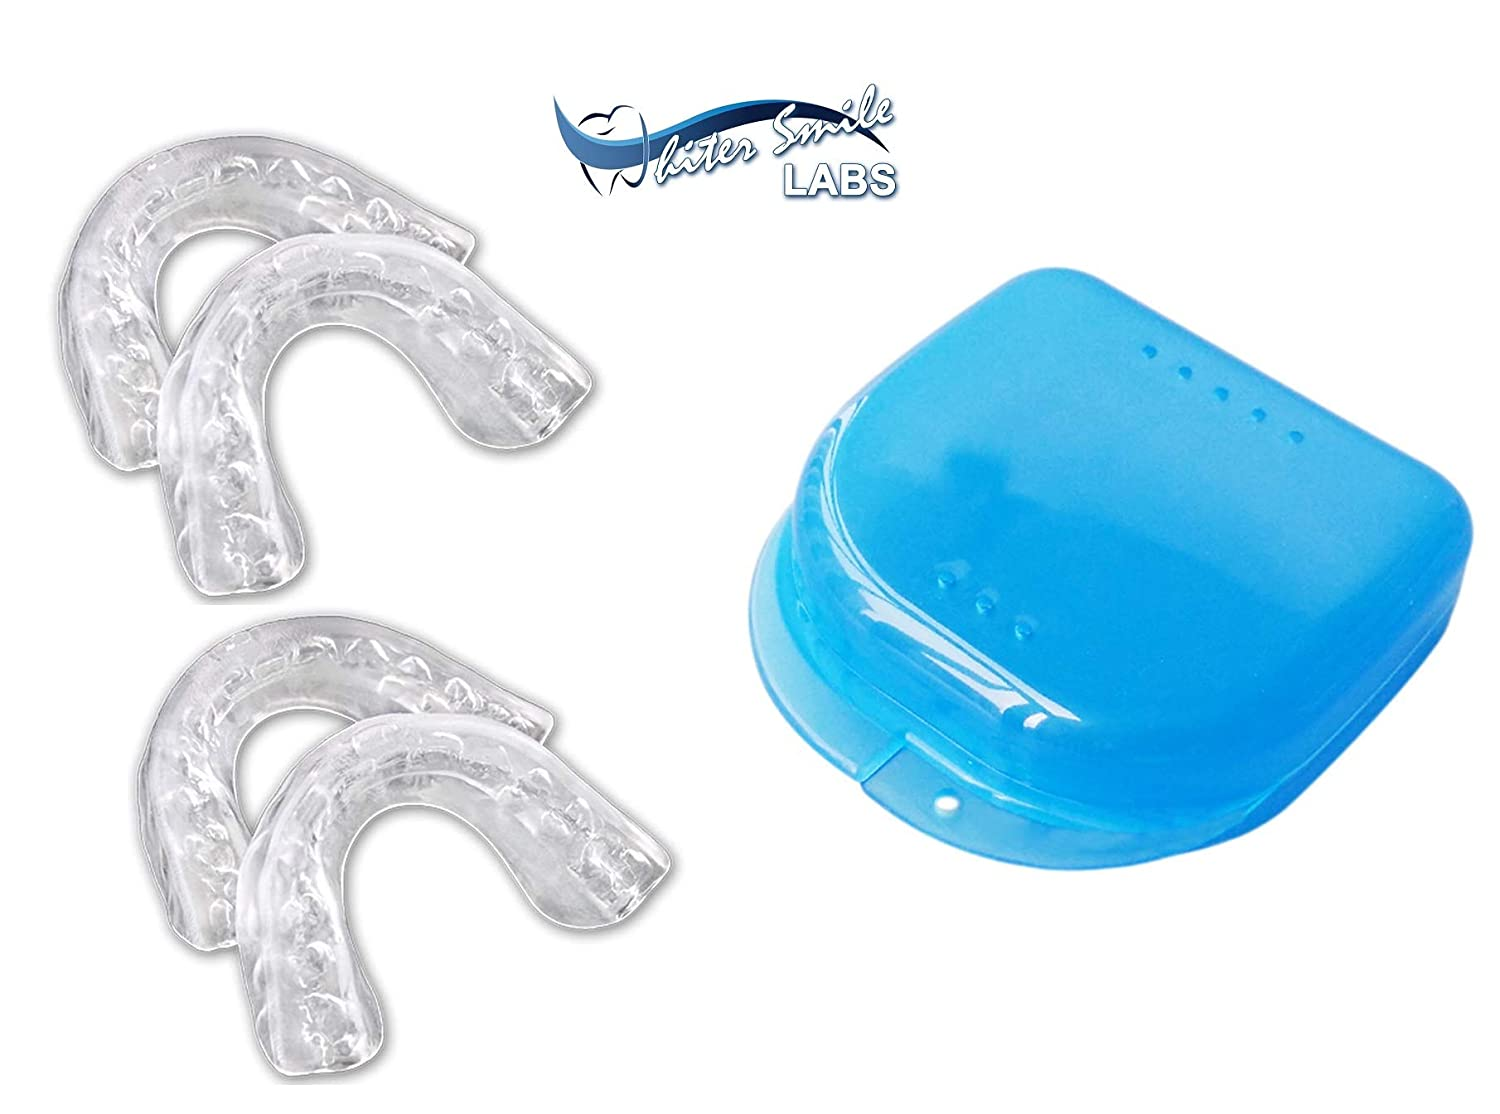 Whiter Smile Labs Teeth Whitening Trays - BPA Free - Thin Moldable Mouth Trays Form Perfectly To Each Tooth